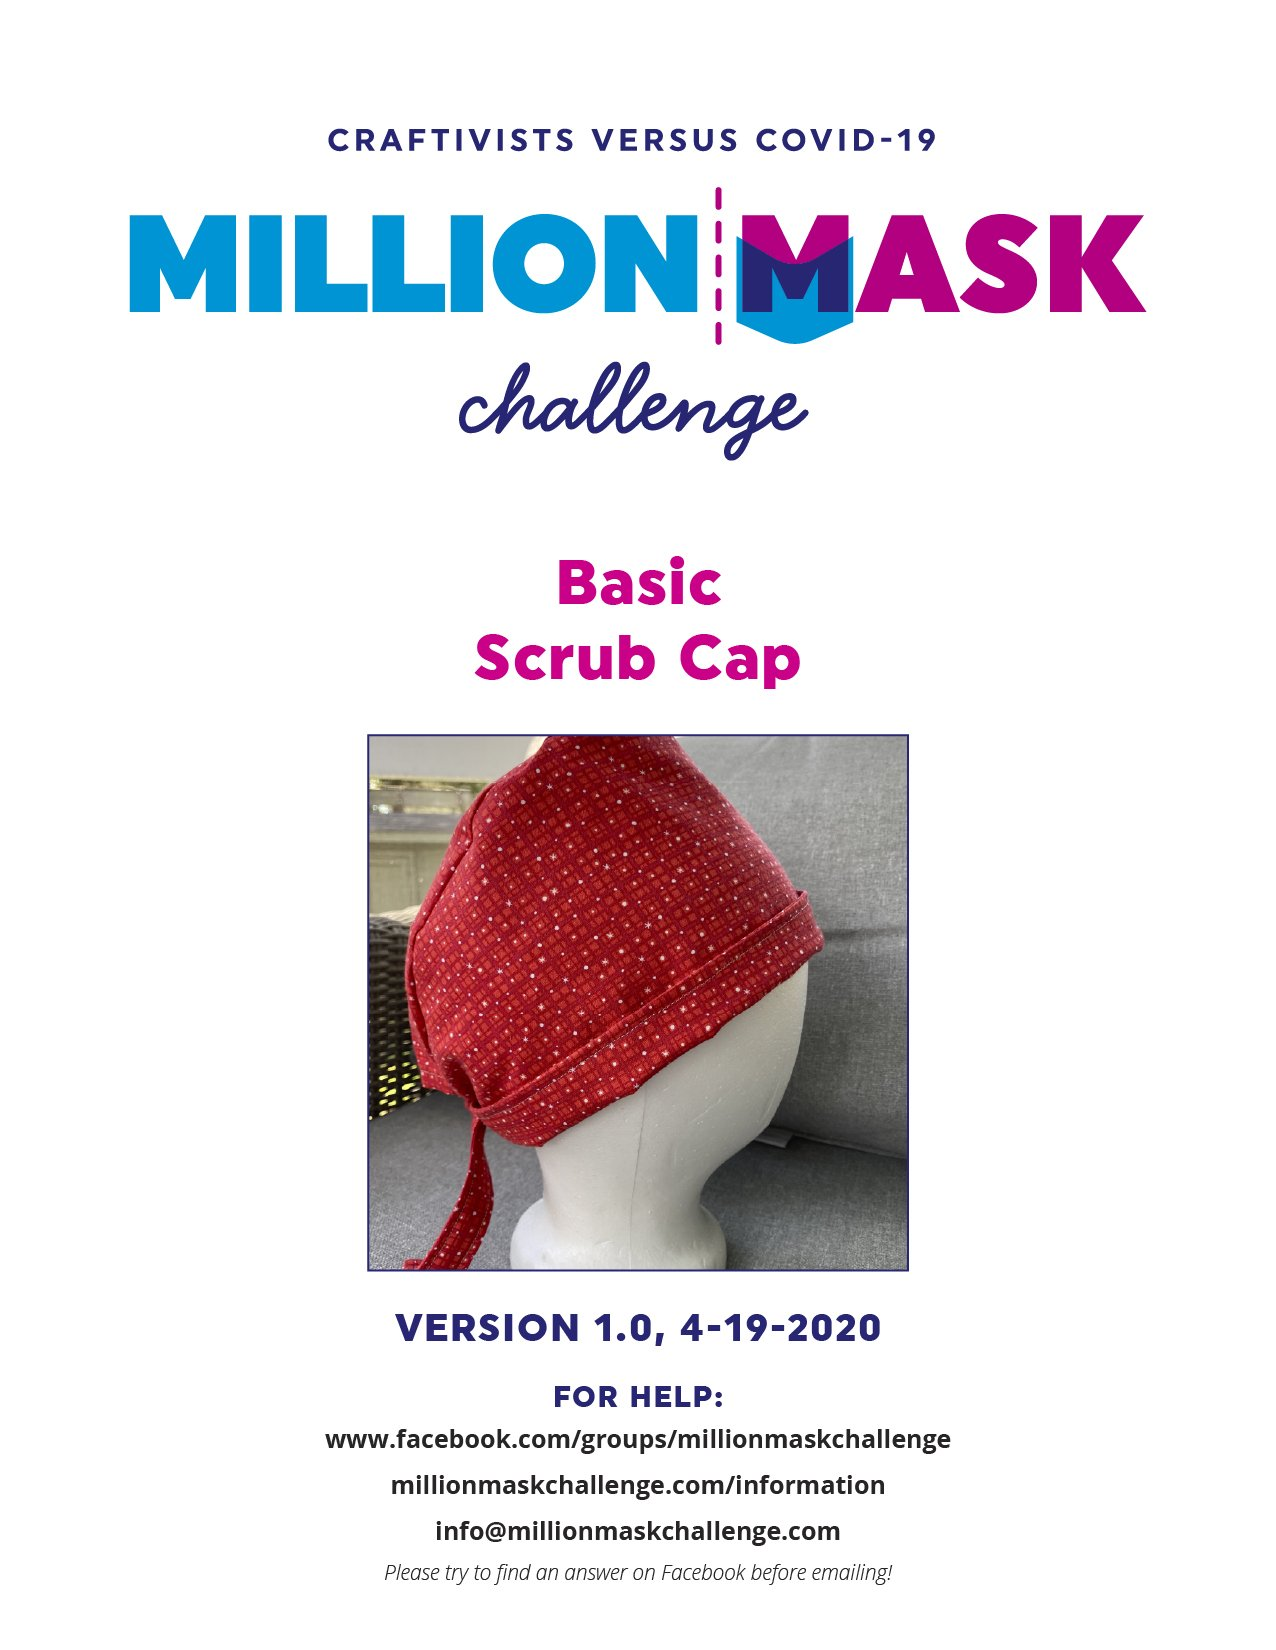 Basic Mask Instructions Version 2.0